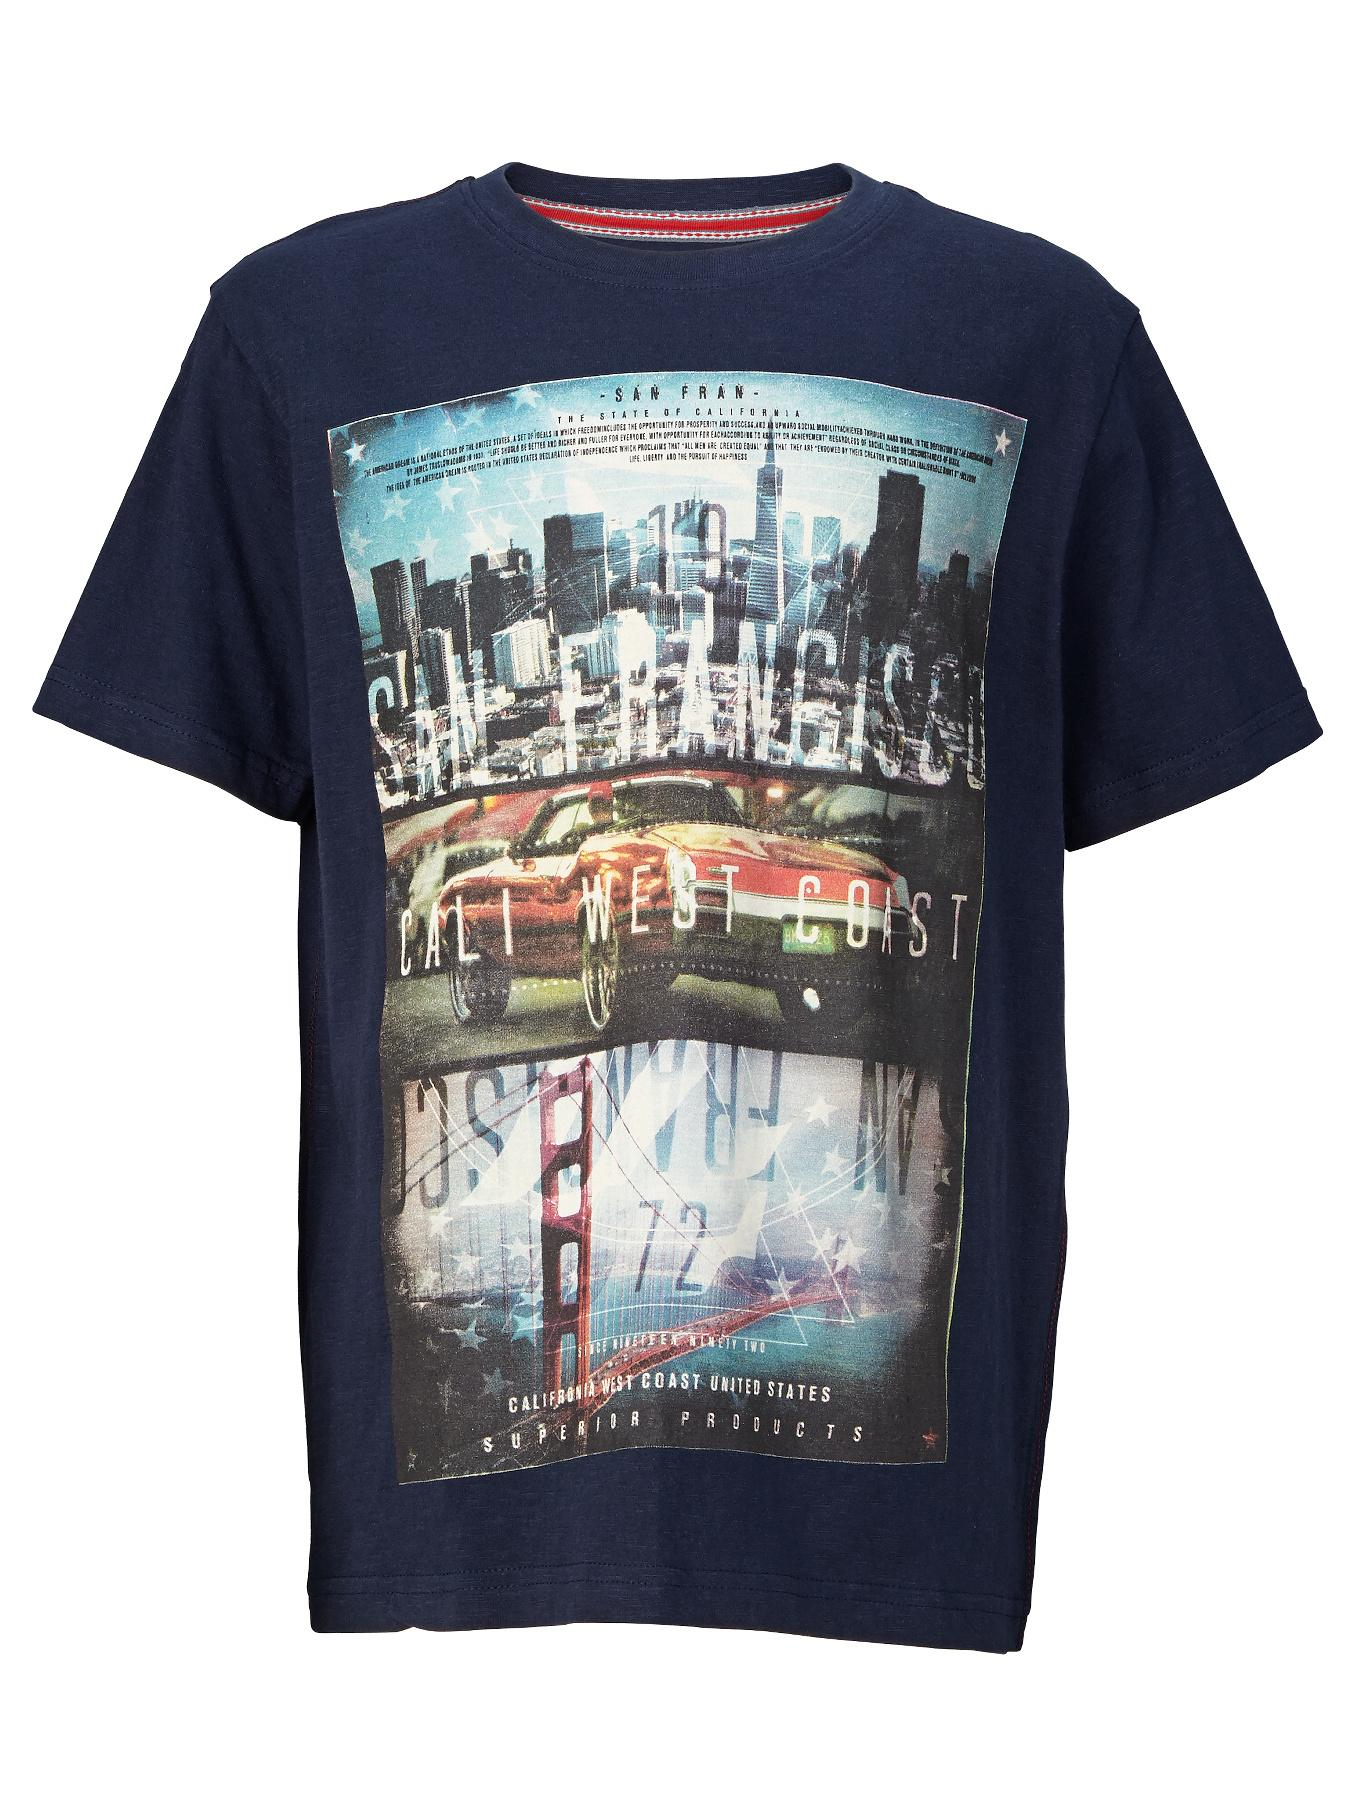 Demo Short Sleeve Cityscape Slub Tee - Navy, Navy